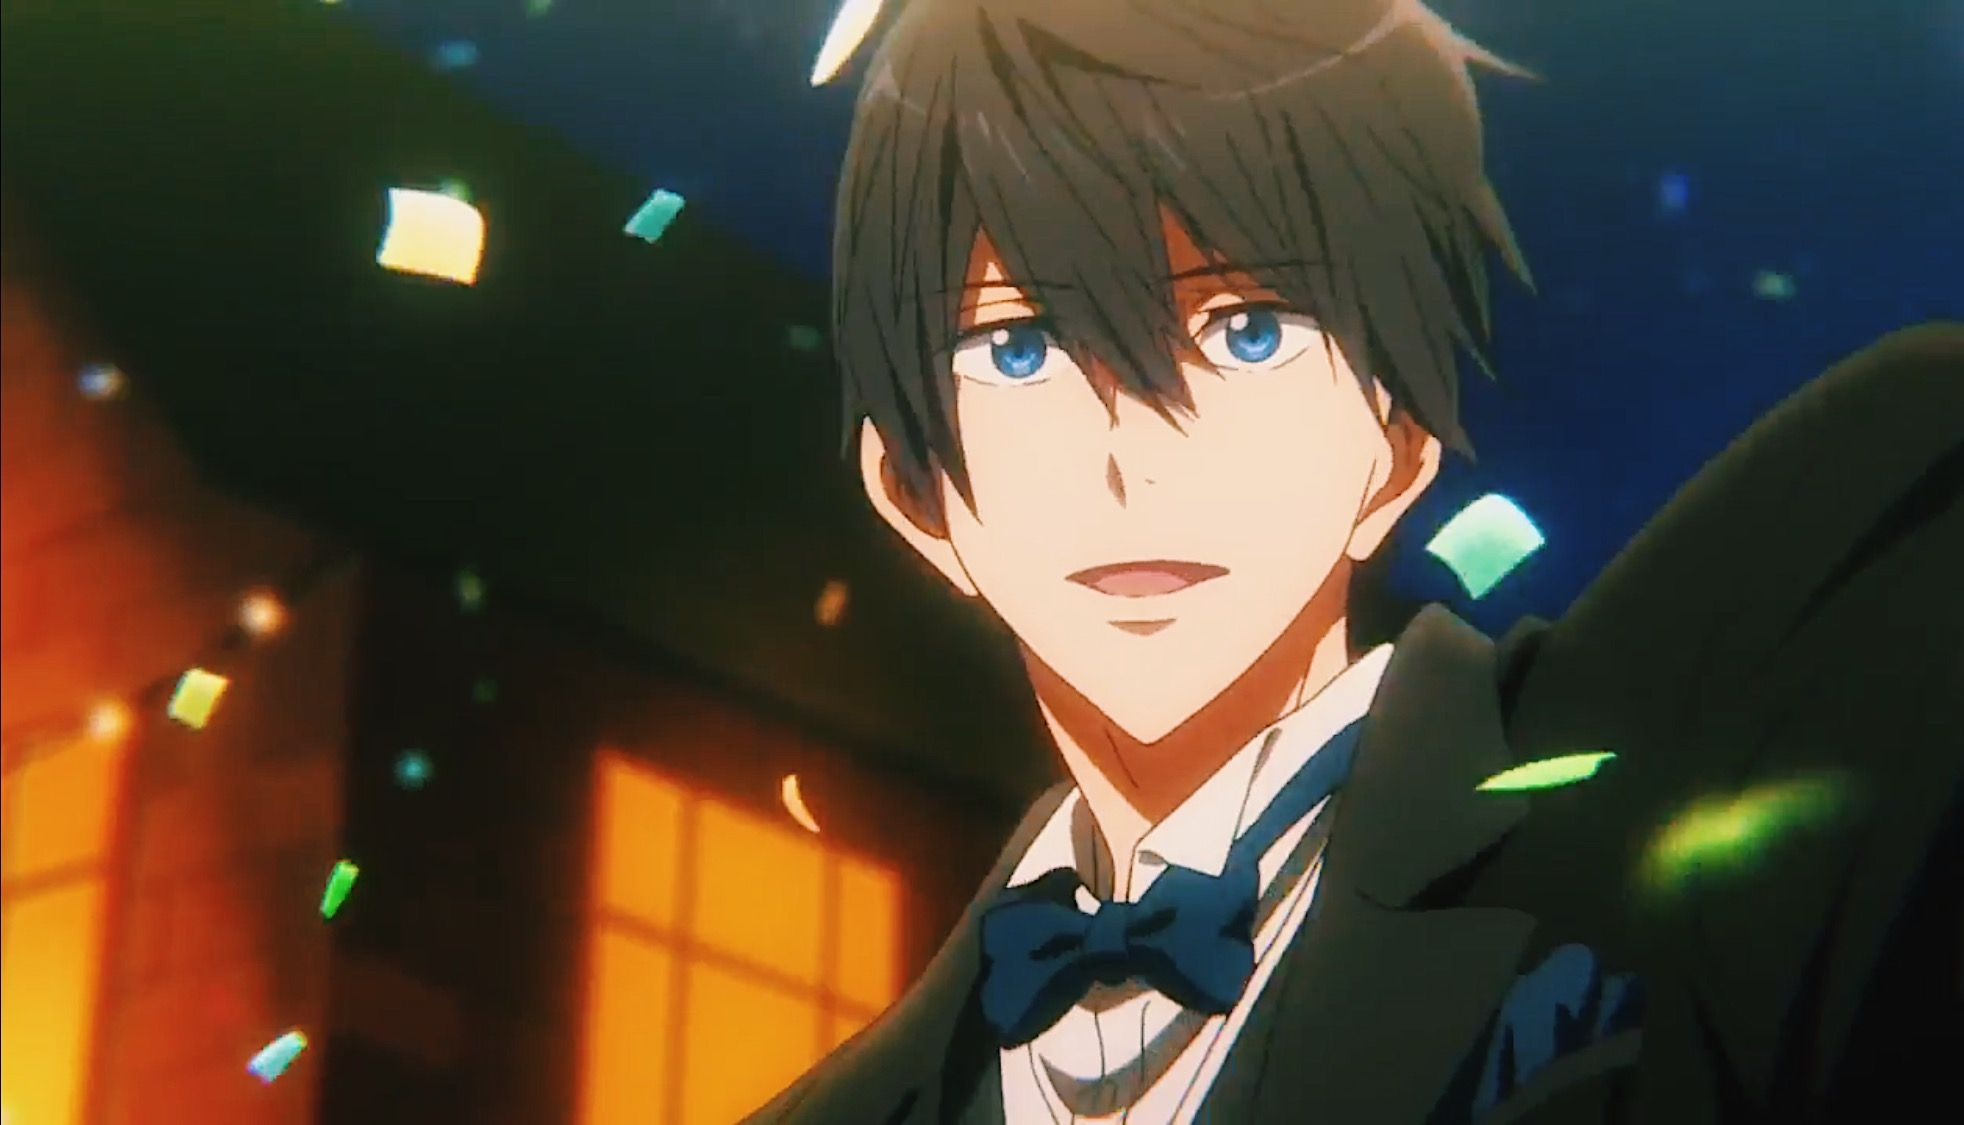 Haru Smiling I Think This Is What We All Wanted Freeanime Iwatobiswimclub Divetothefuture Harukananase Free Iwatobi Swim Club Free Anime Free Iwatobi